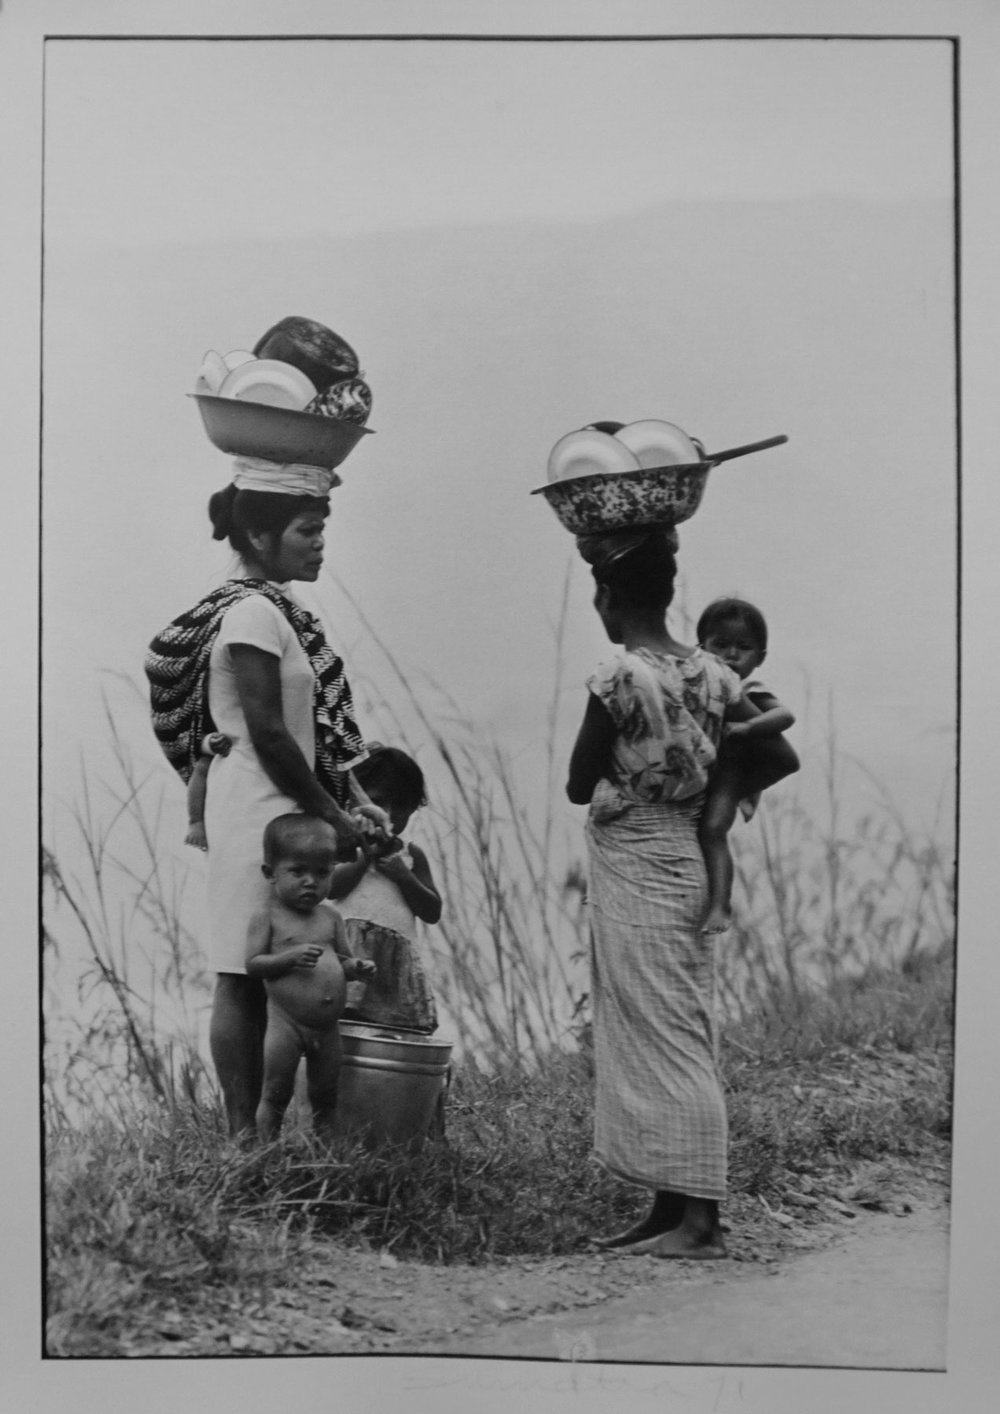 71. Richard Woldendorp, 'Women exchanging news, Lake Toba, Sumatra, Indonesia', BW335, taken and printed in 1971, Vintage Print